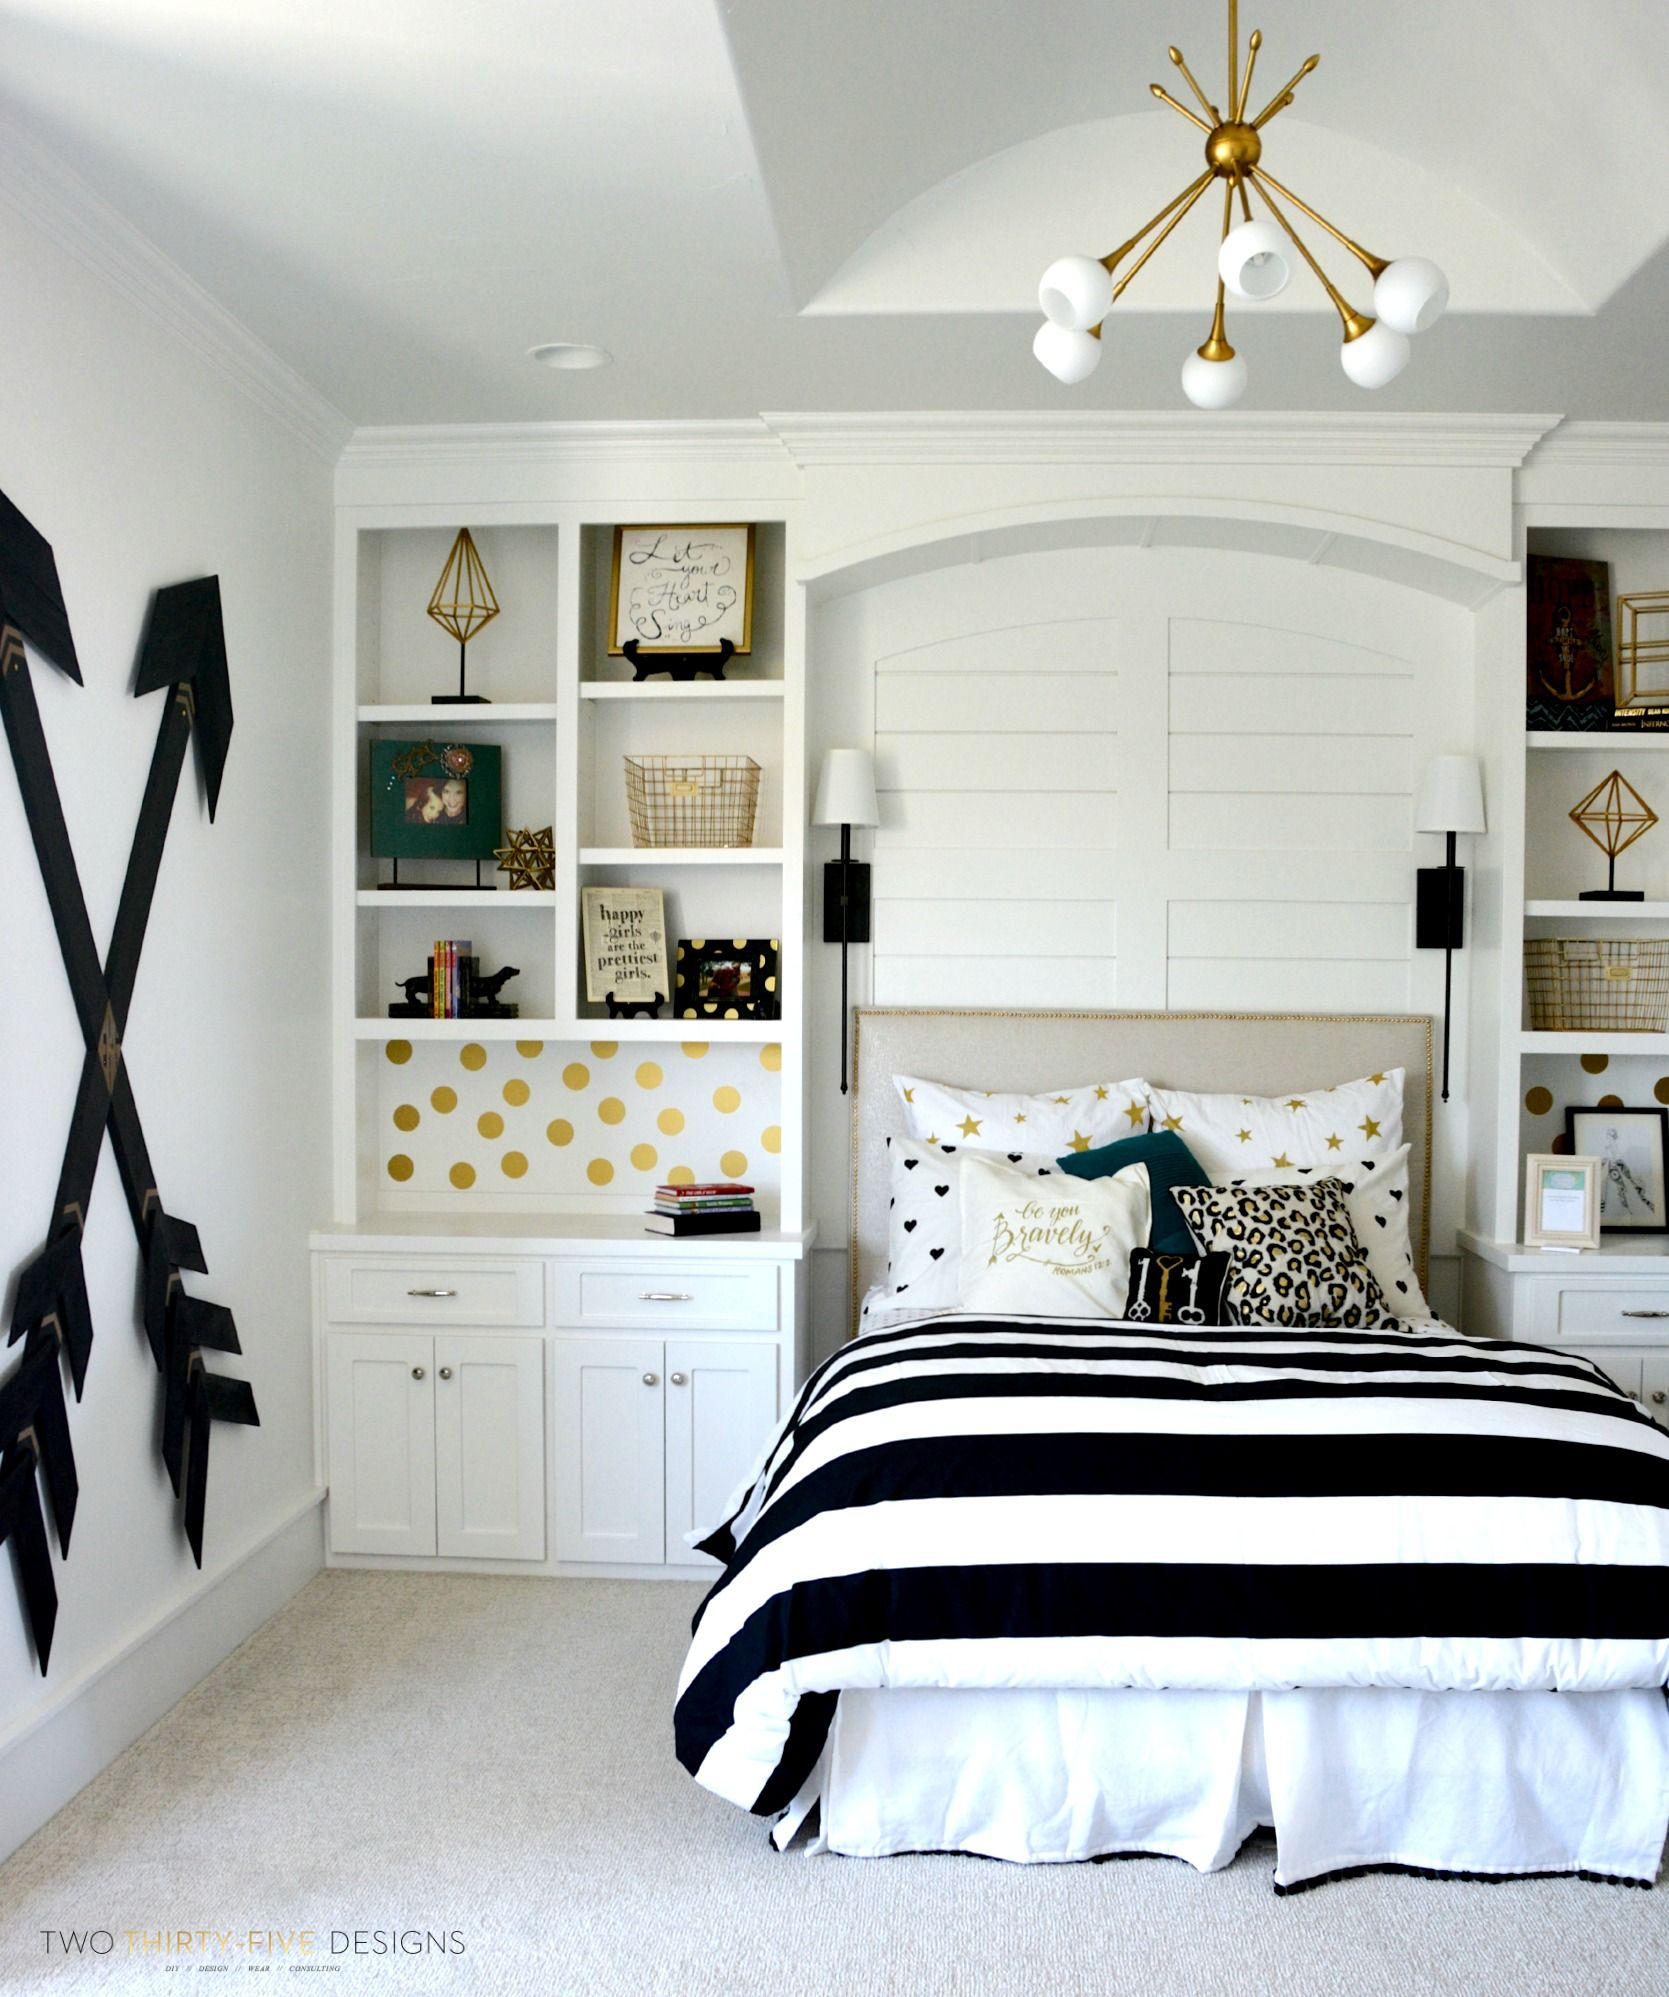 Design Teenage Girl Room Ideas teen girls room gray striped walls black and white bedding pottery barn girl bedroom with wooden wall arrows by two thirtyfive designs